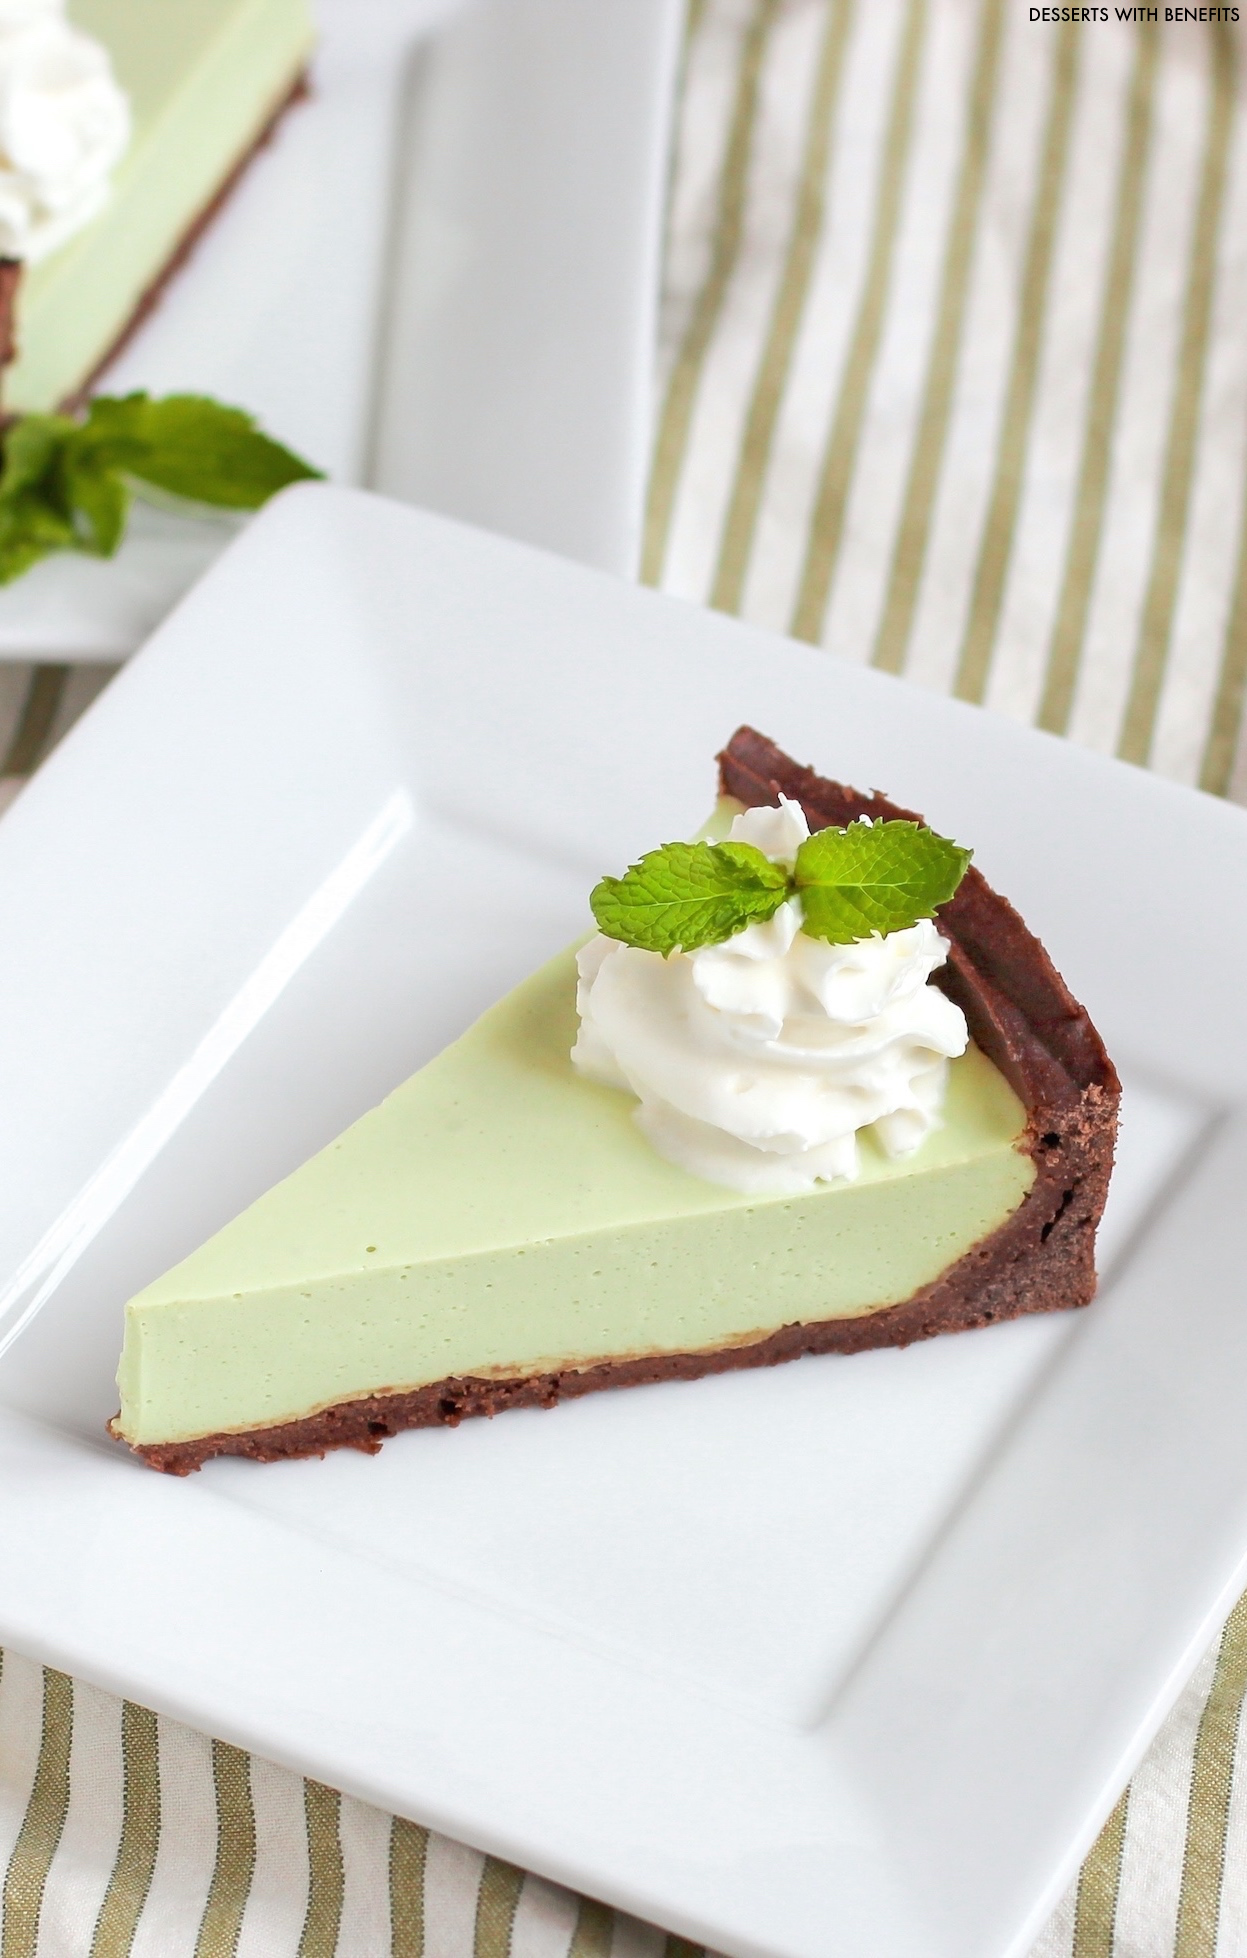 [14 healthy pie recipes to celebrate Pi Day] Healthy Grasshopper Pie from the Naughty or Nice Cookbook: The ULTIMATE Healthy Dessert Cookbook!